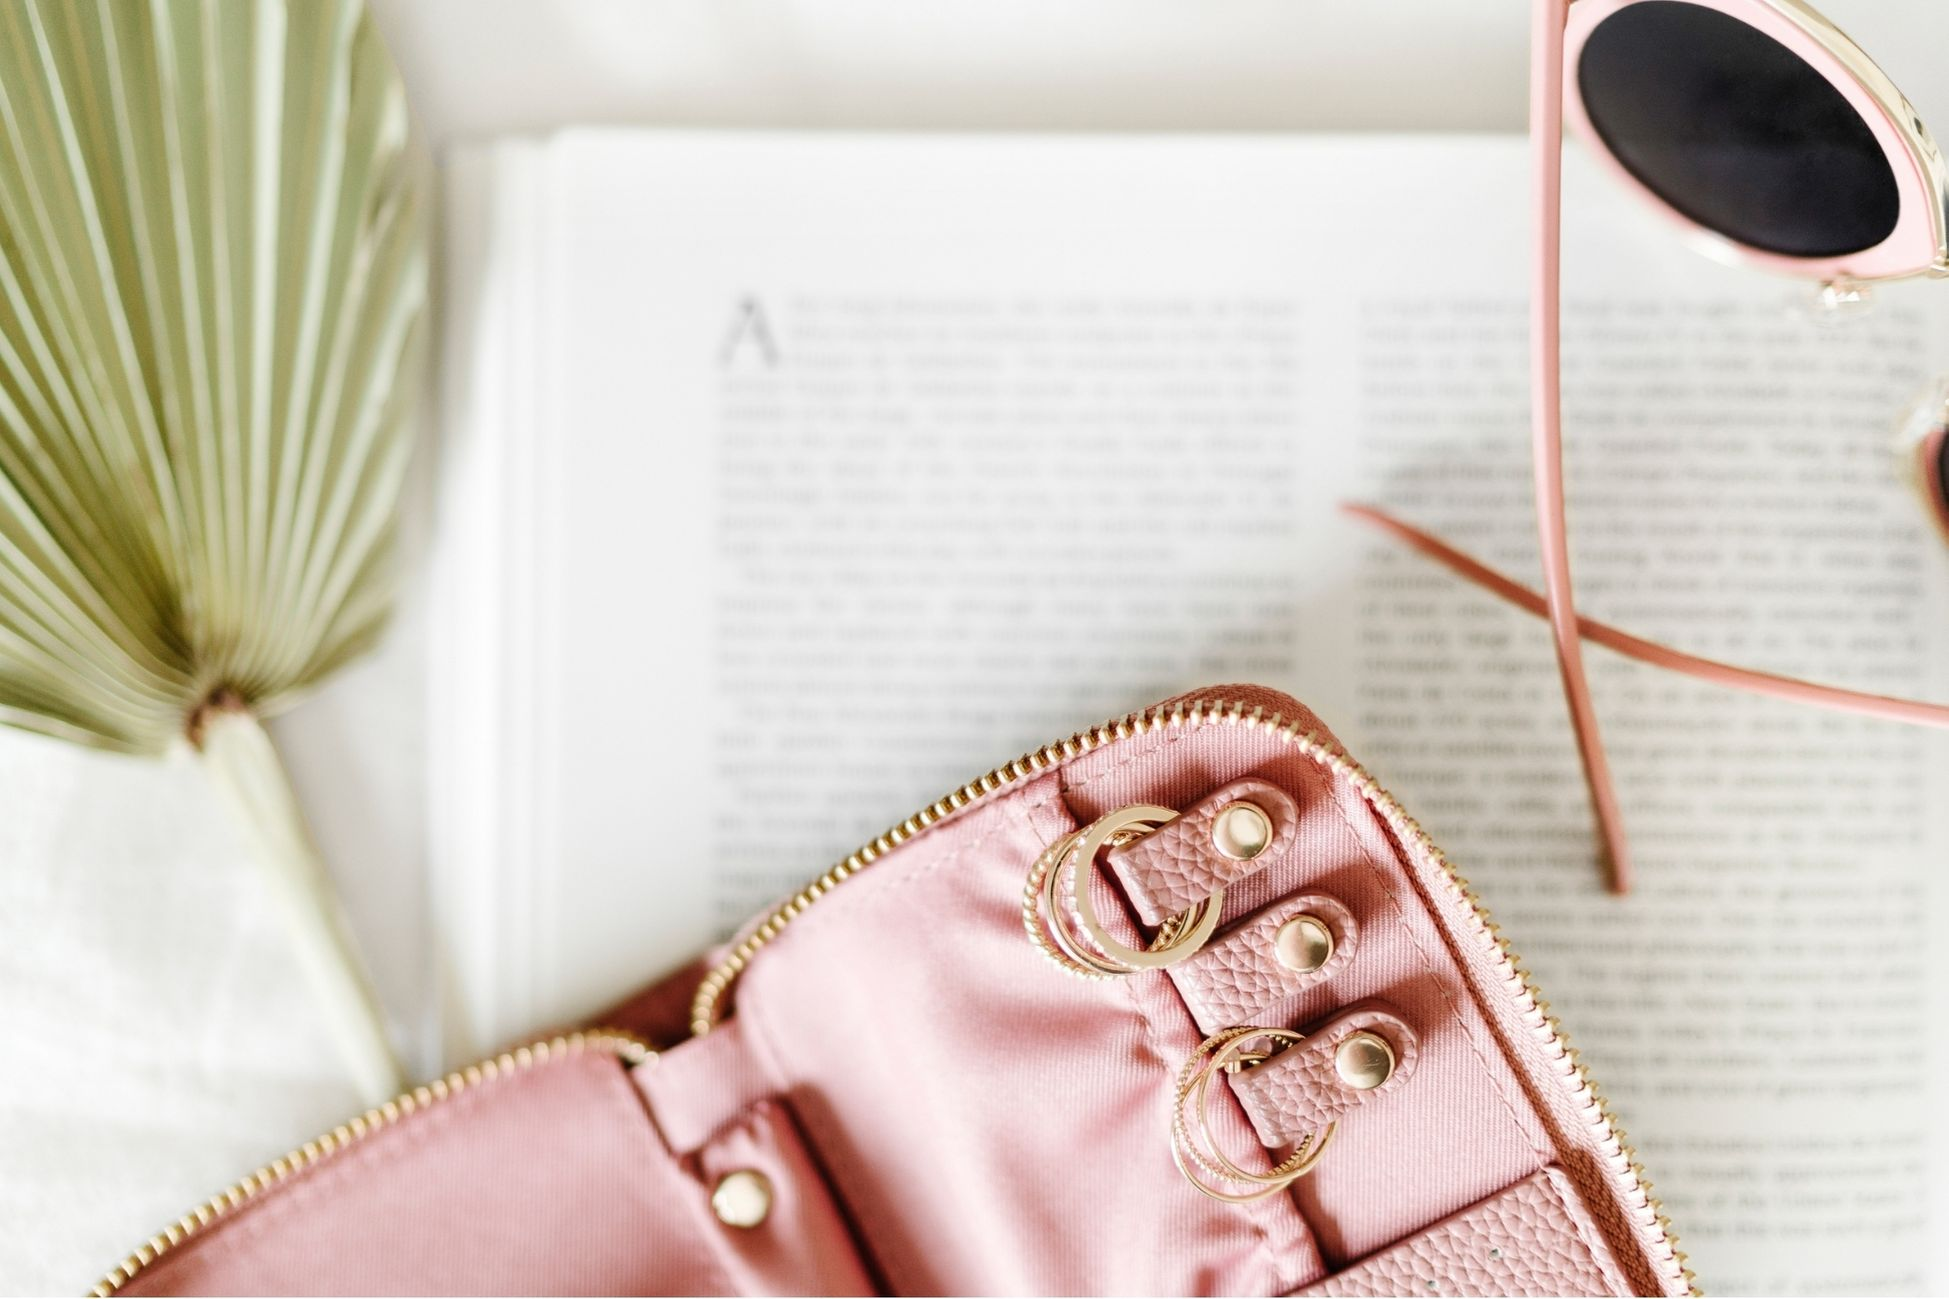 a pink zippered wallet, sun glasses and a journal collected on a table.